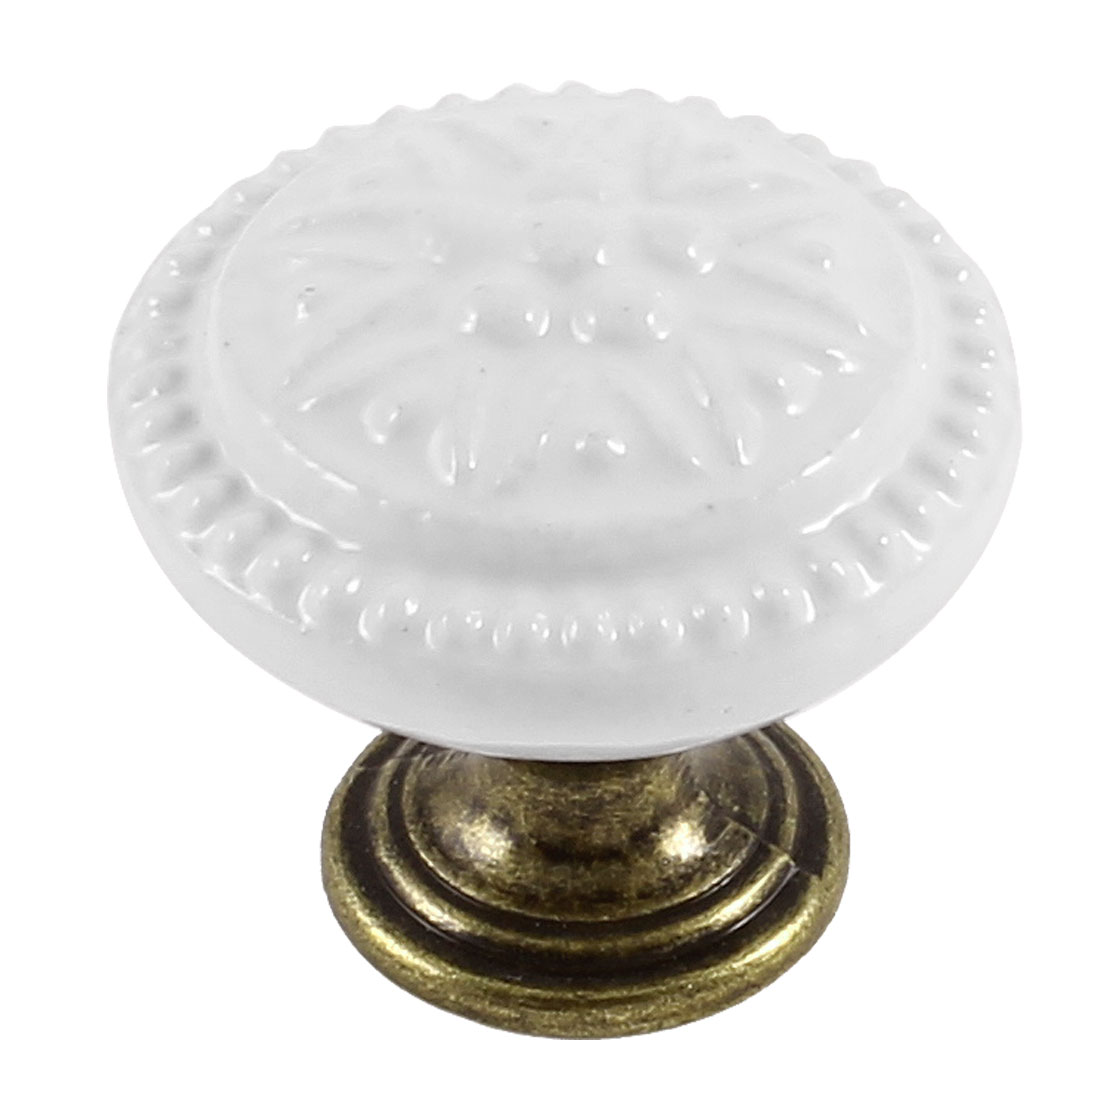 Home White Flower Pattern Bronze Tone Metal Base Drawer Knob Pull Handle Grip